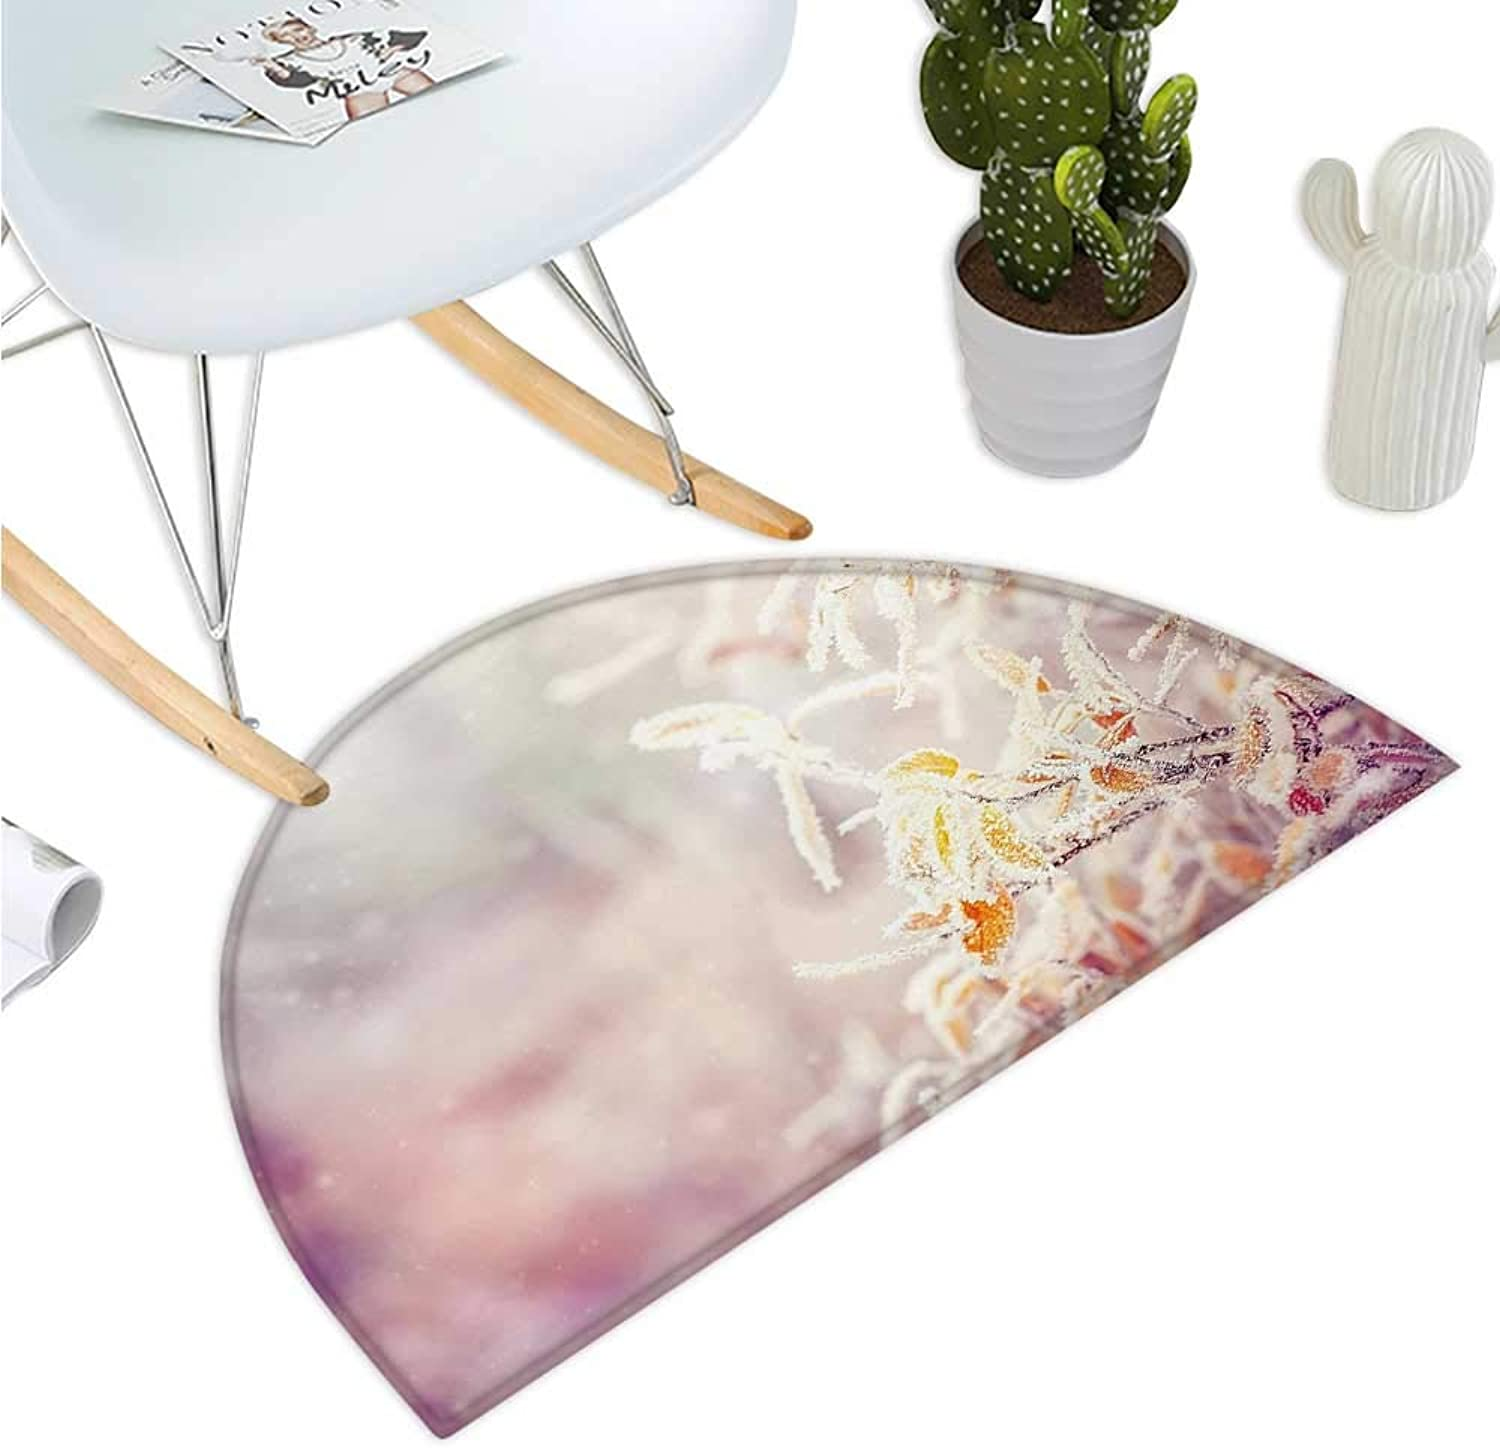 Winter Semicircular Cushion Snow Branches Tree Leaves Snowflakes Holiday Christmas Theme November Nature Entry Door Mat H 39.3  xD 59  orange Pink White